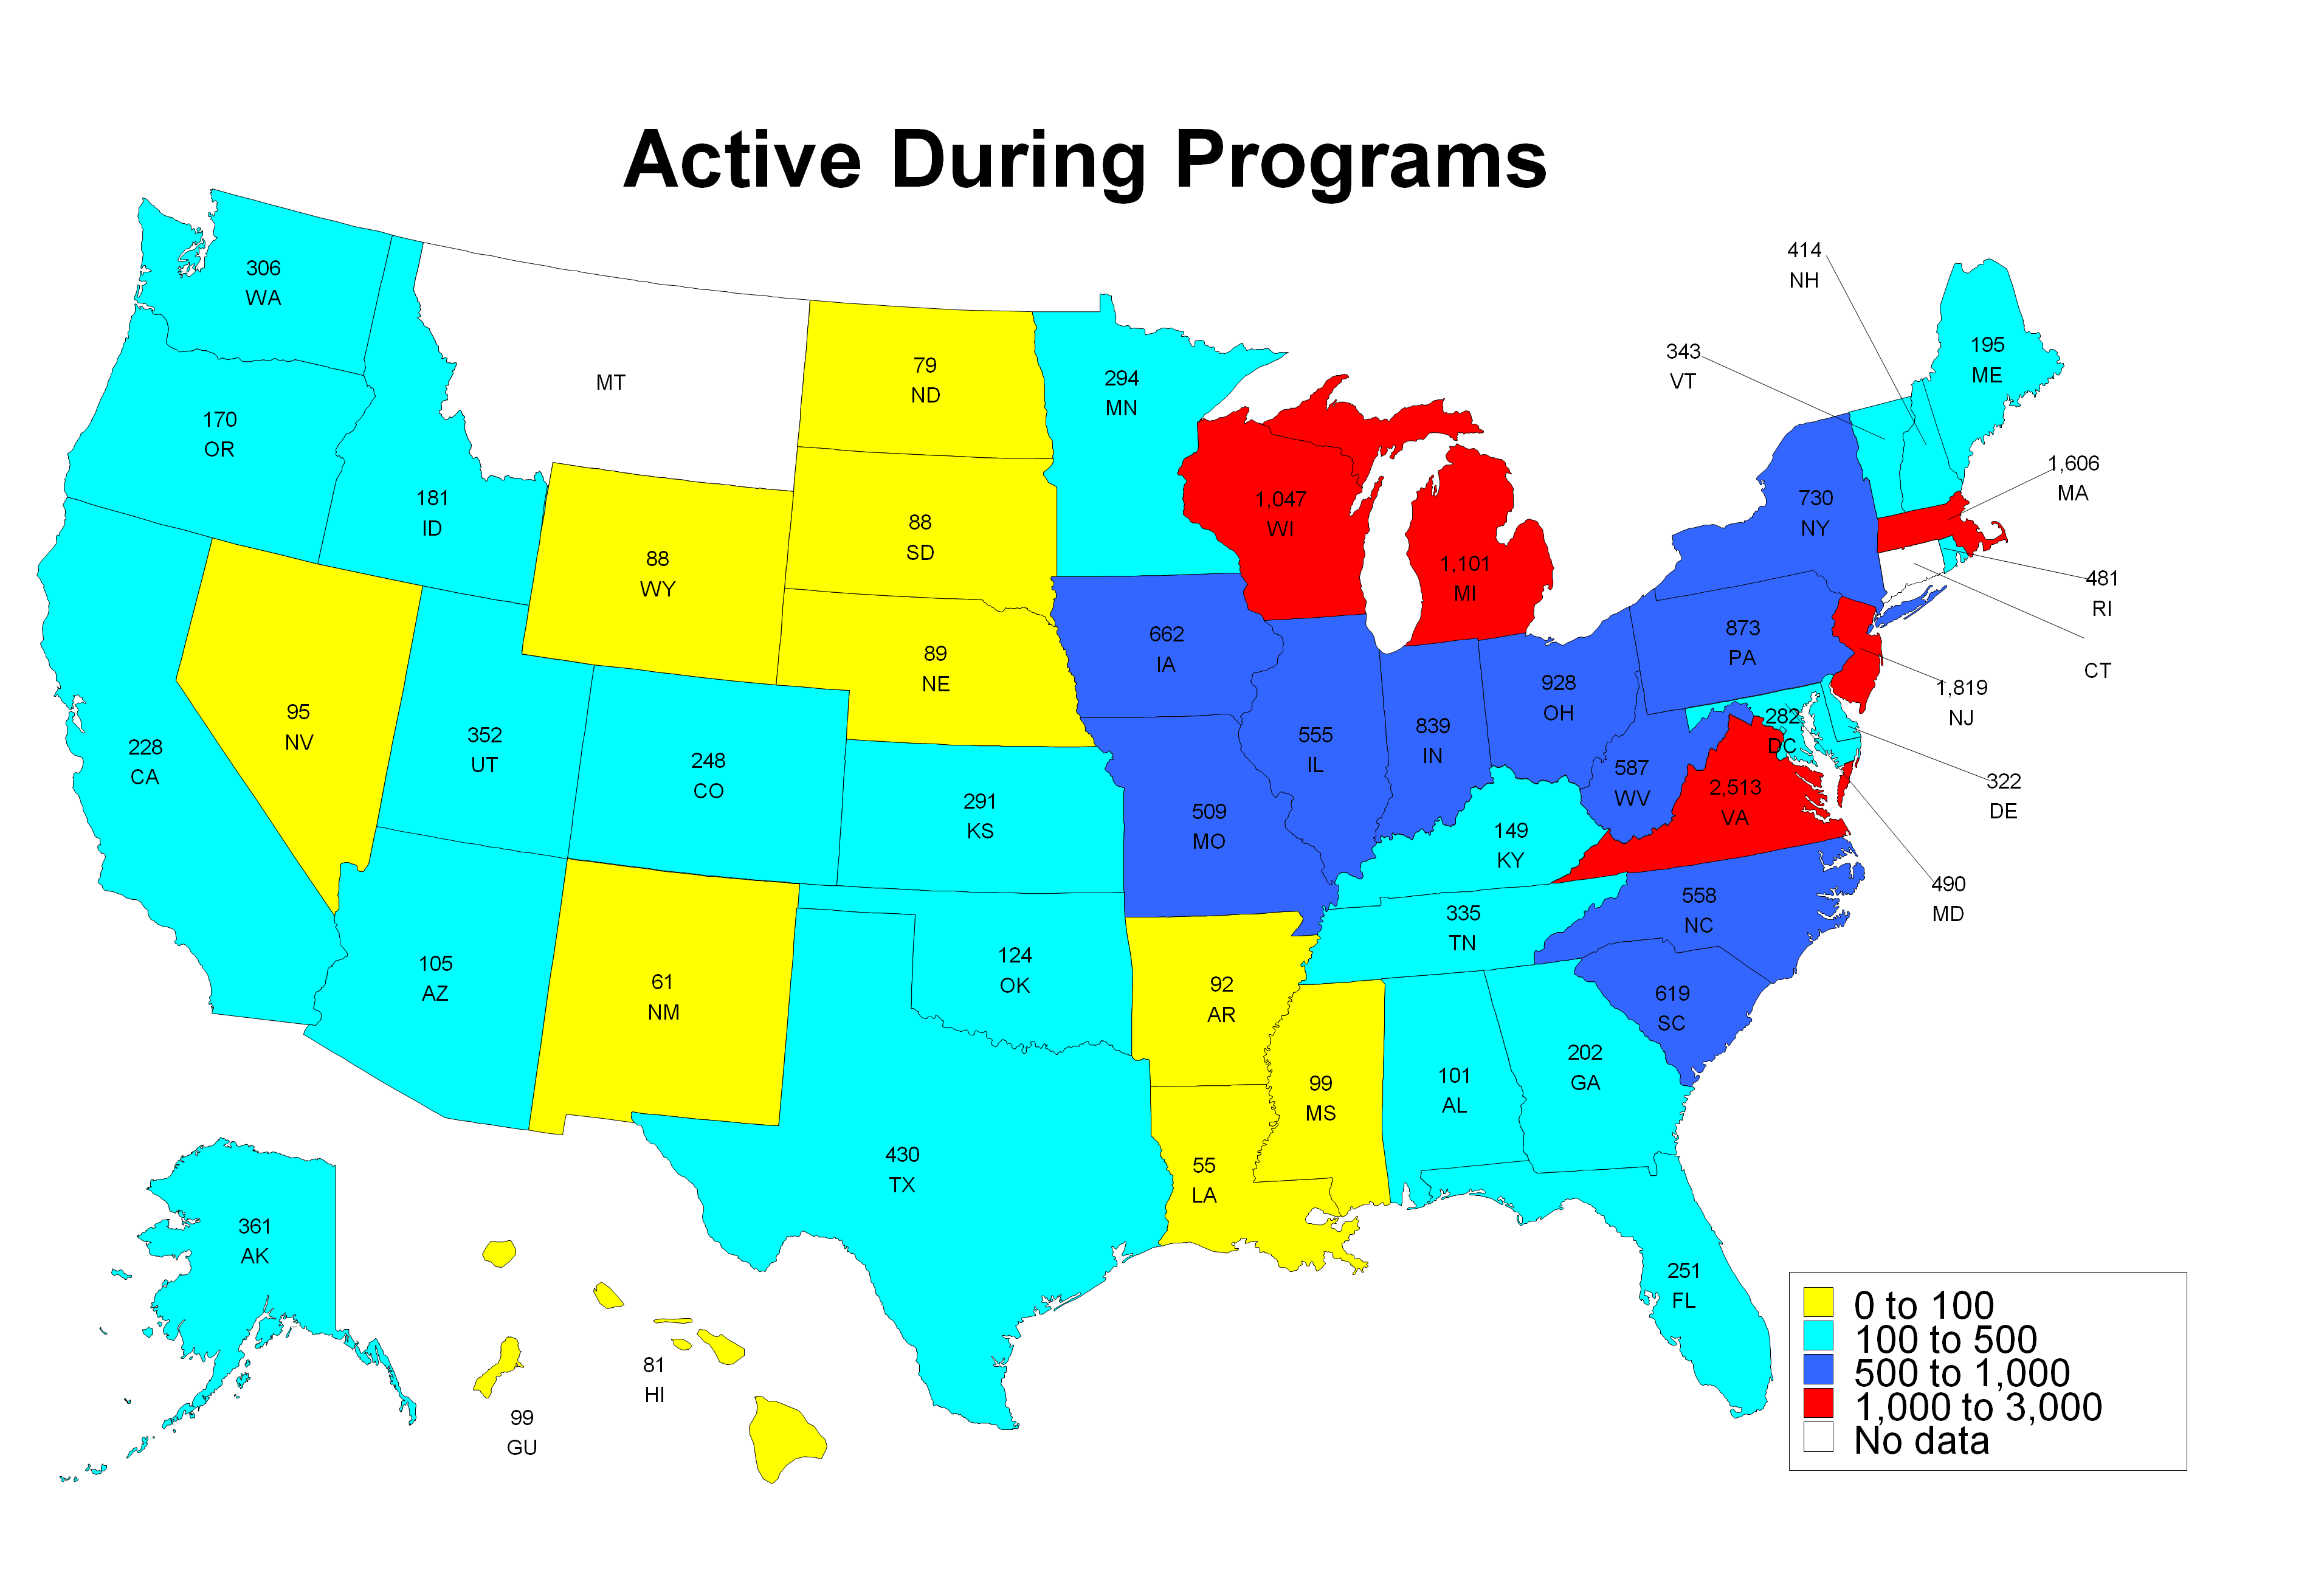 Active During Programs 2013